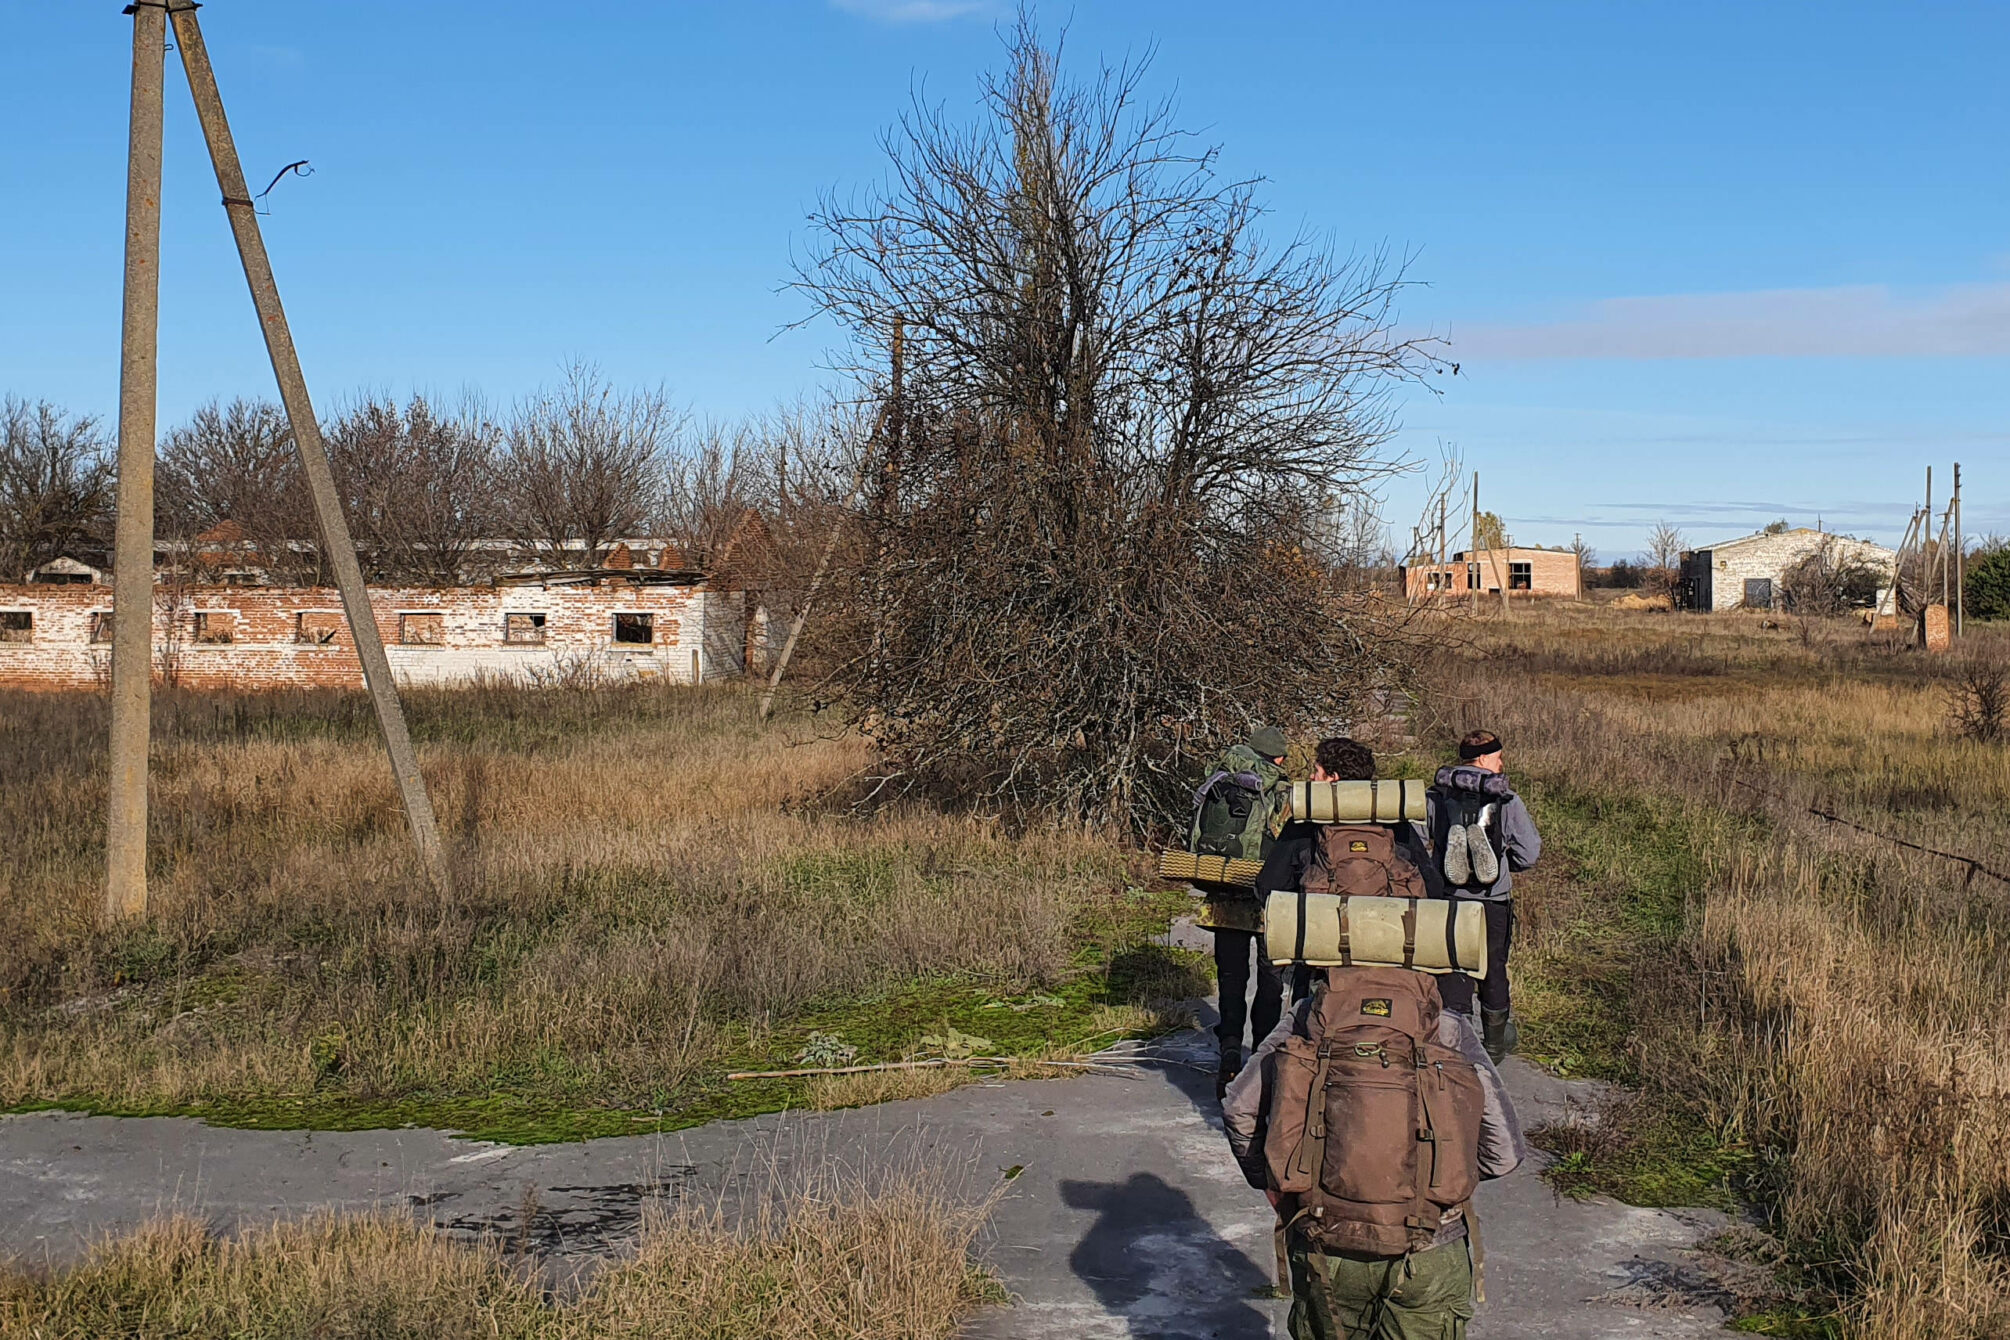 Reaching an abandonded village